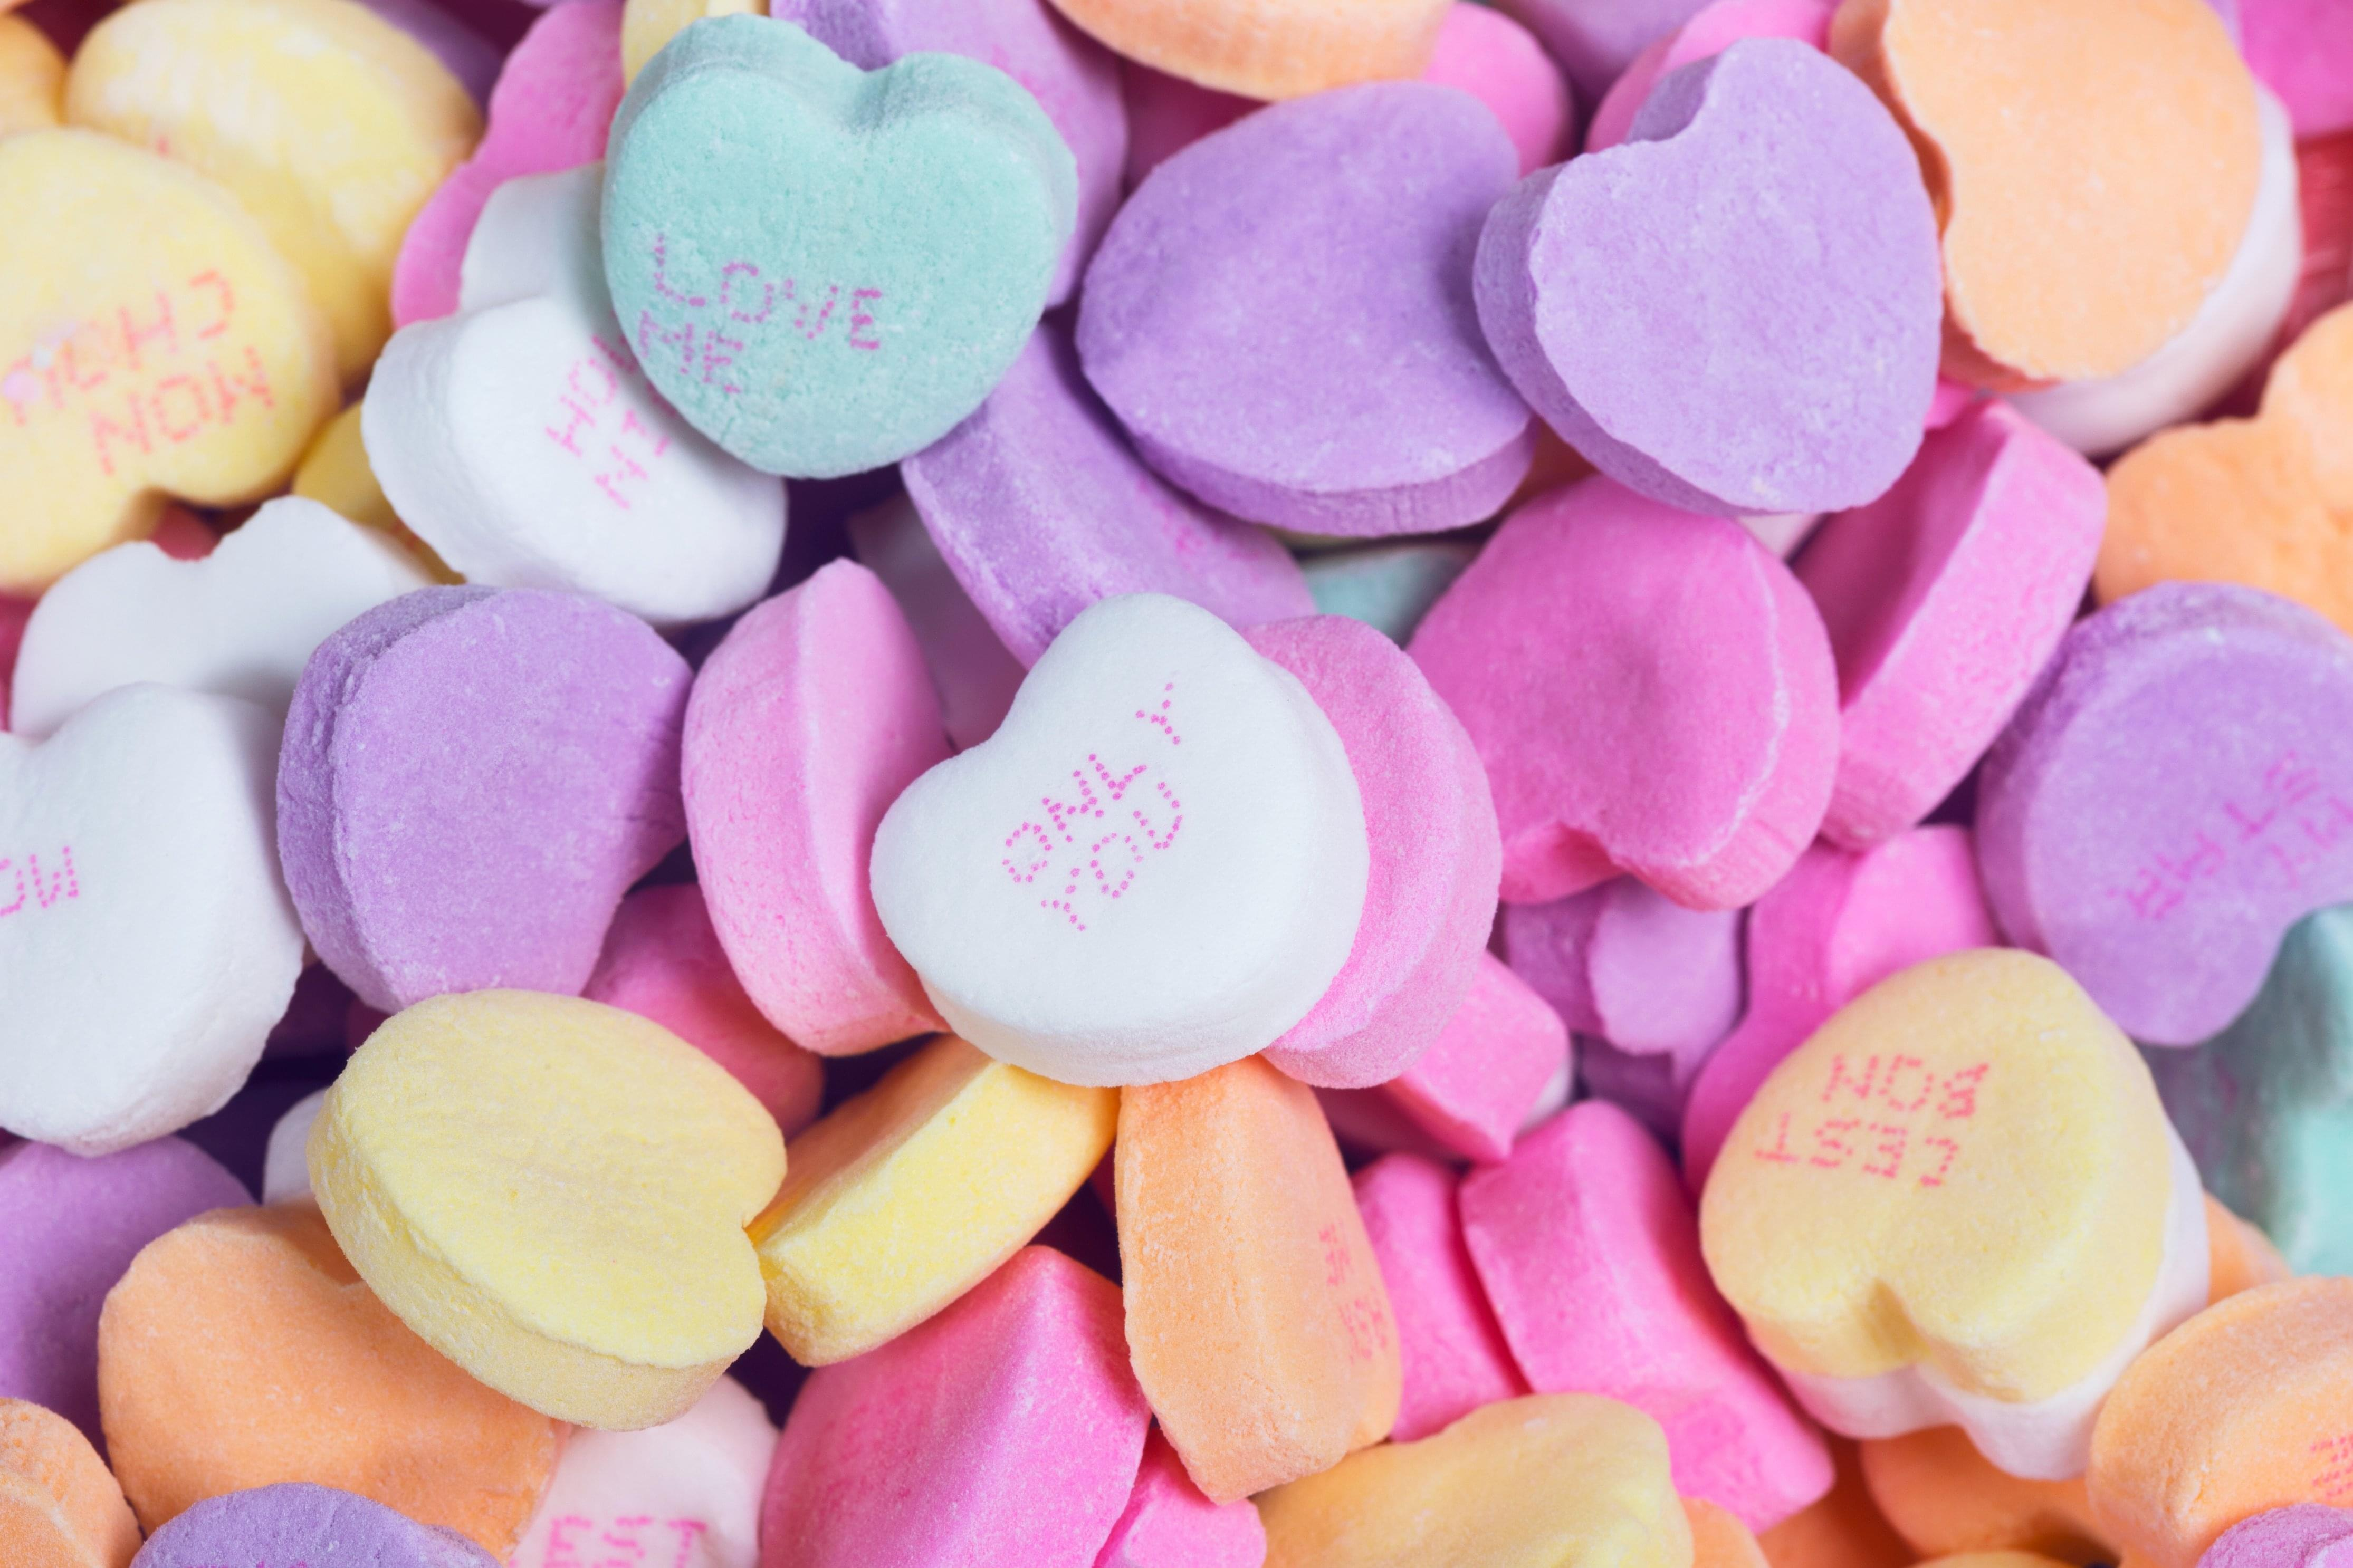 Conversation Hearts coming back this Valentine's Day